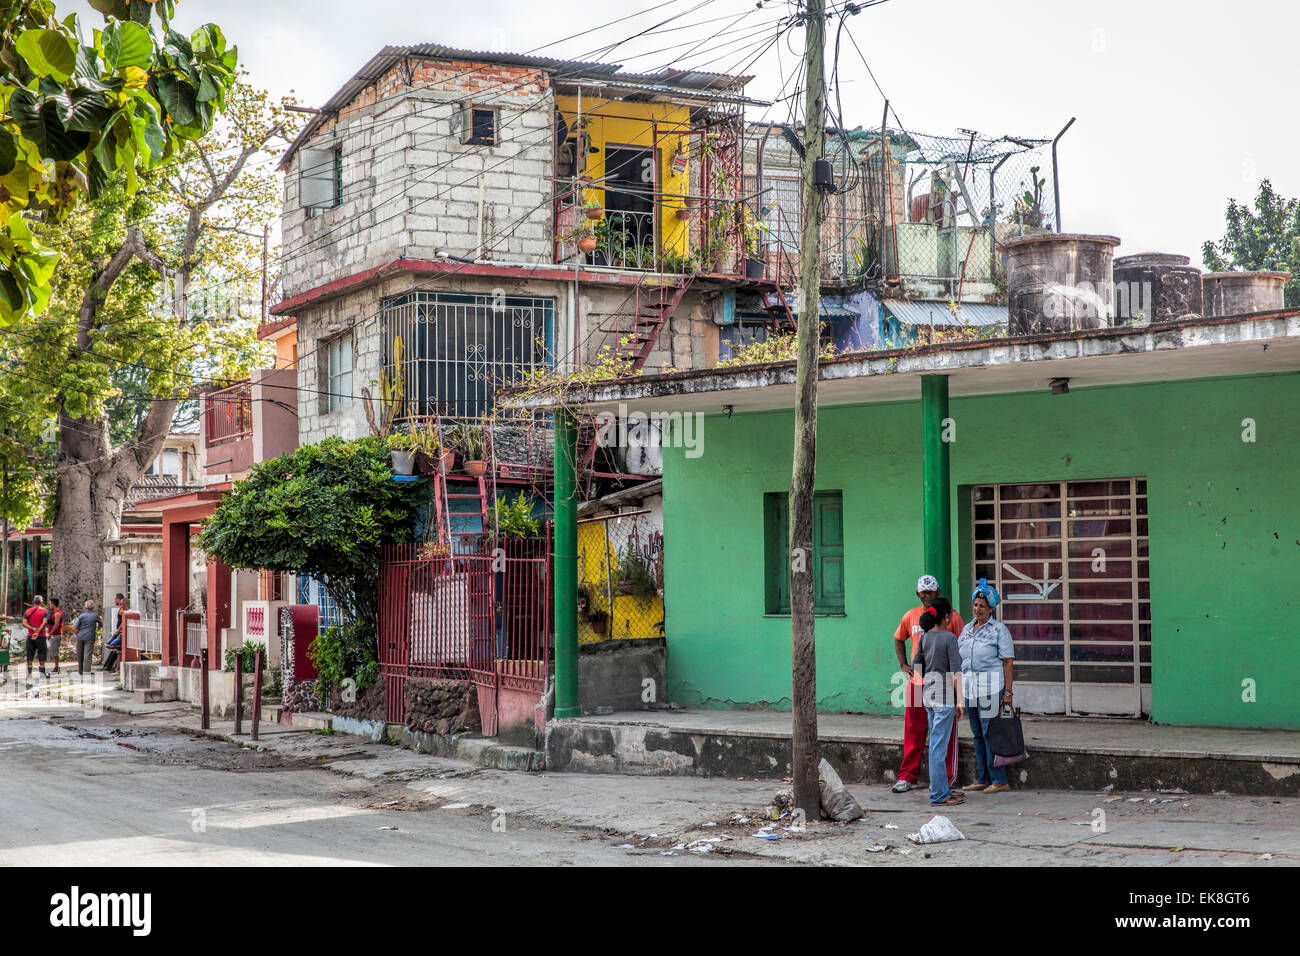 shanty town in a poor suburb of havana in cuba stock photo royalty free image 80708774 alamy. Black Bedroom Furniture Sets. Home Design Ideas